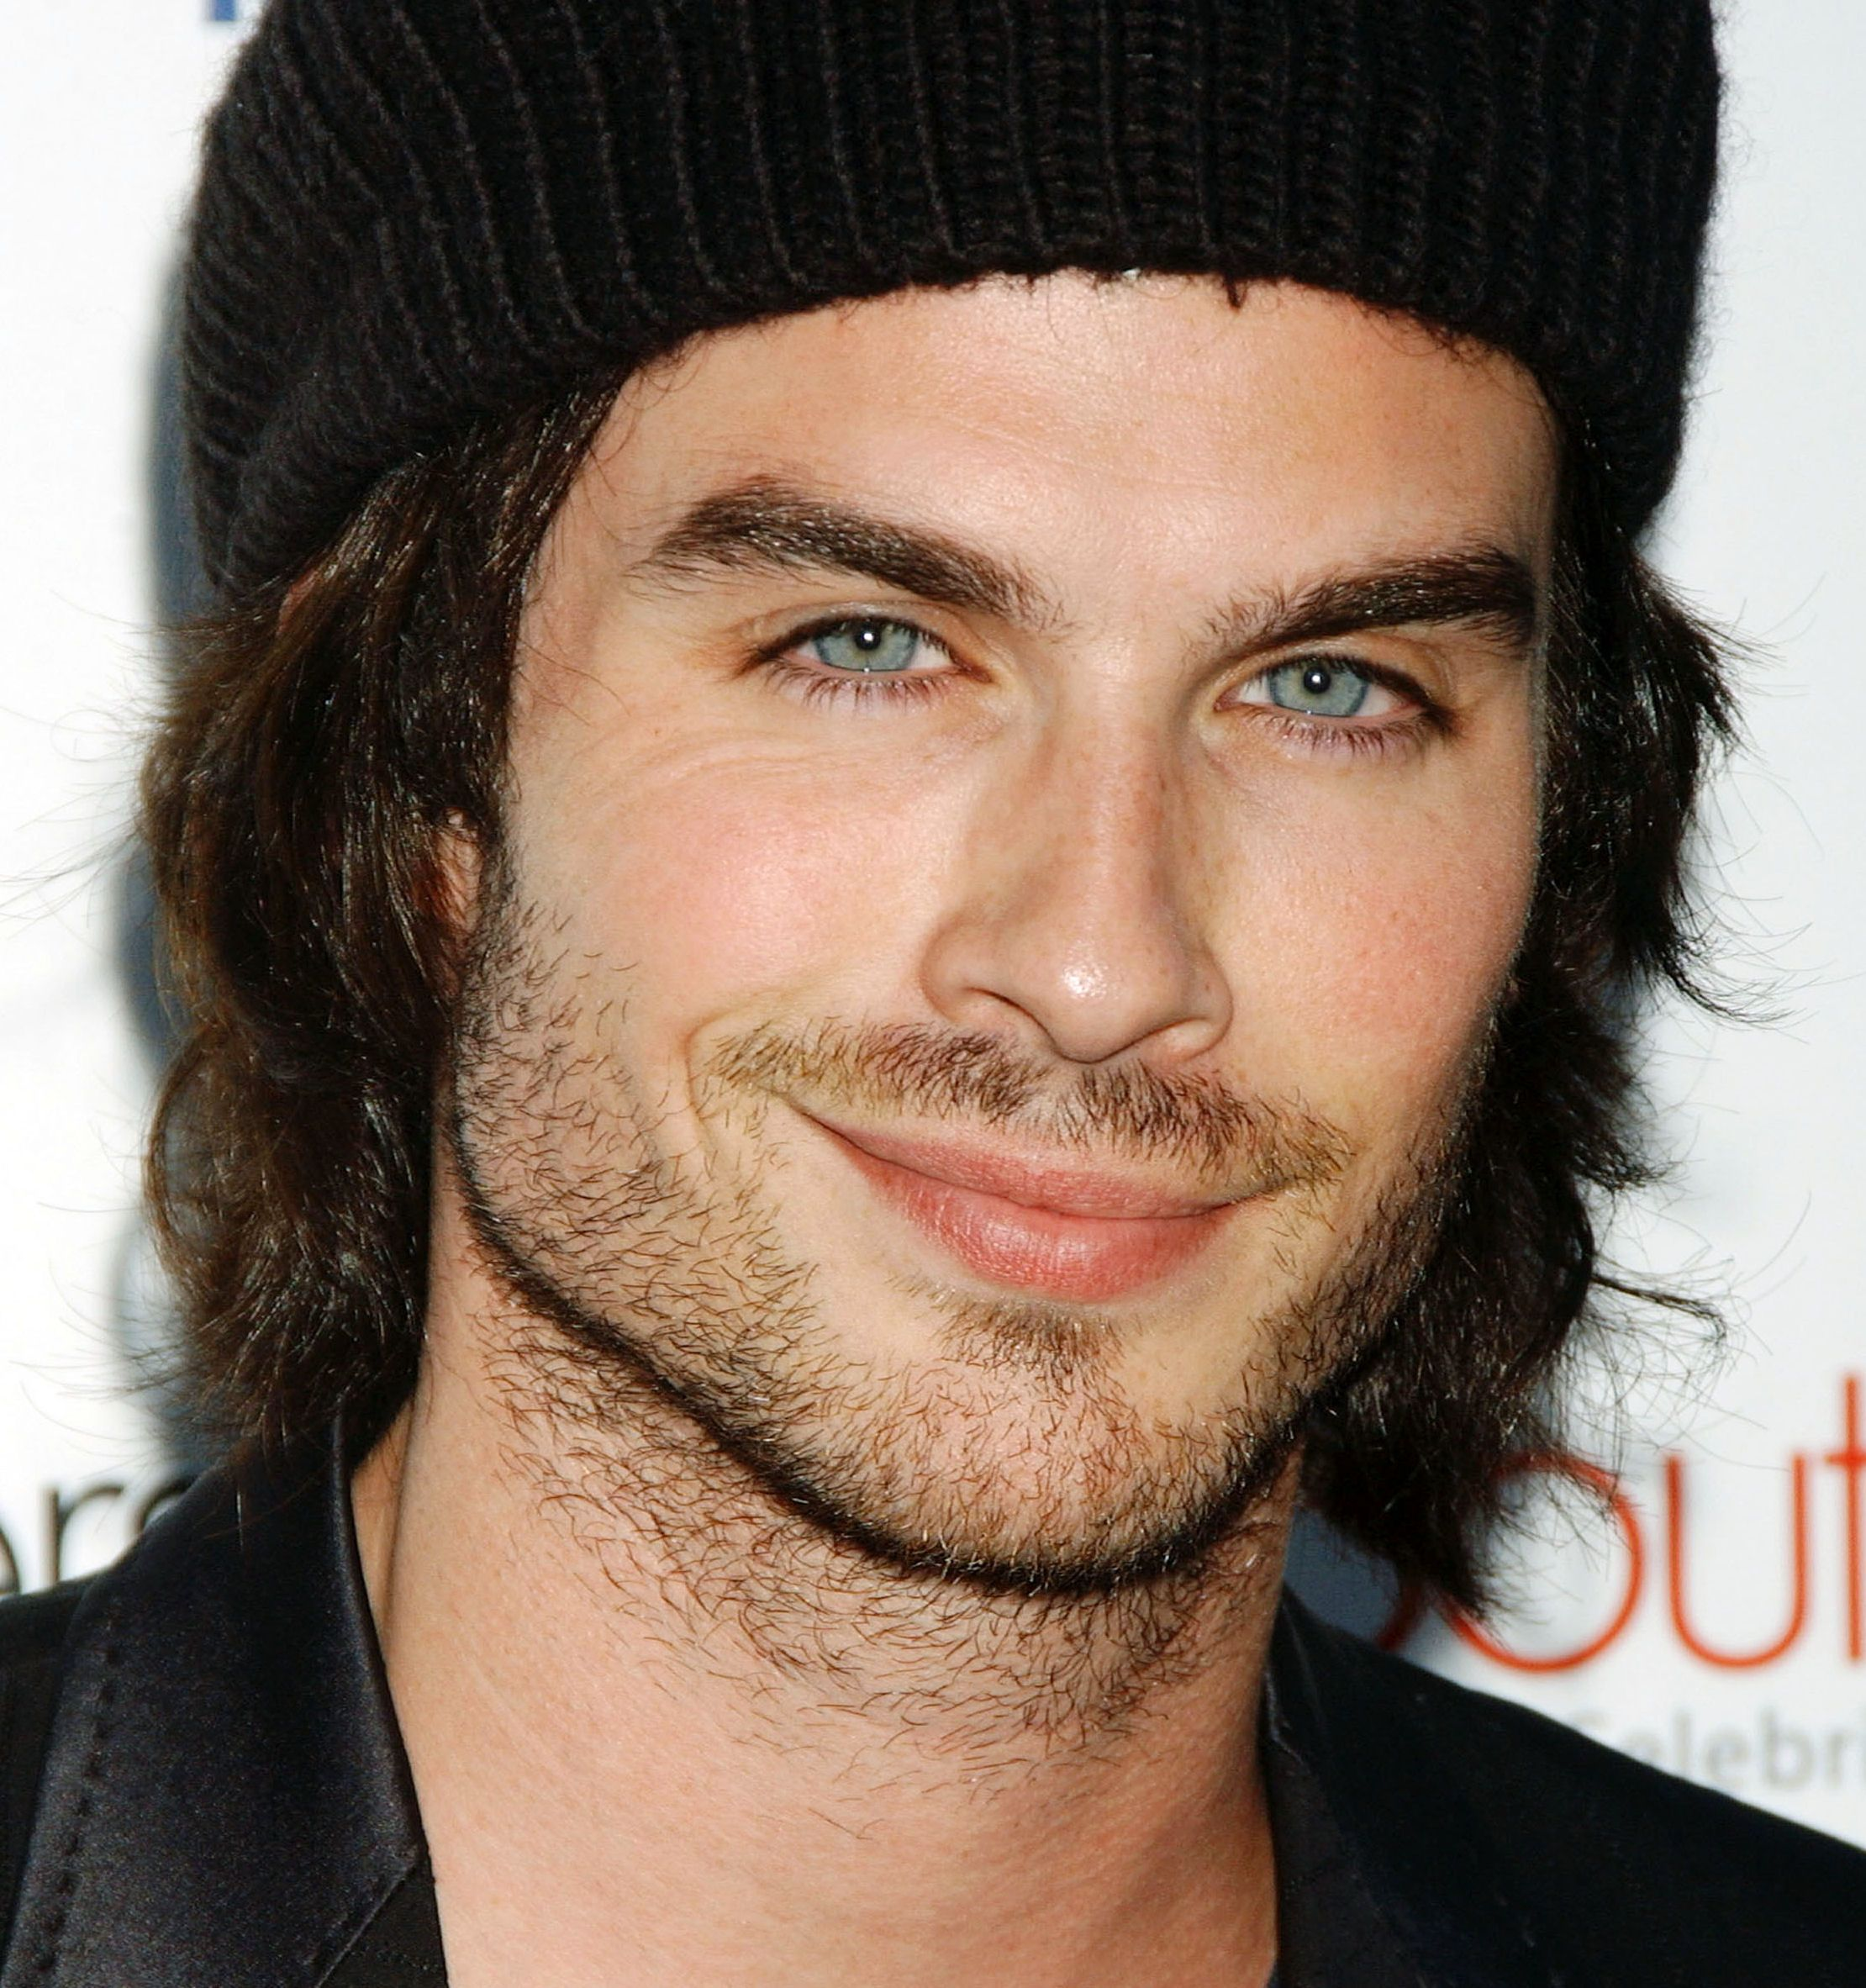 Jeϟϟi 39 S Groupies Images Ian Somerhalder Hd Wallpaper And Ian Somerhalder Most Handsome Men Handsome Men